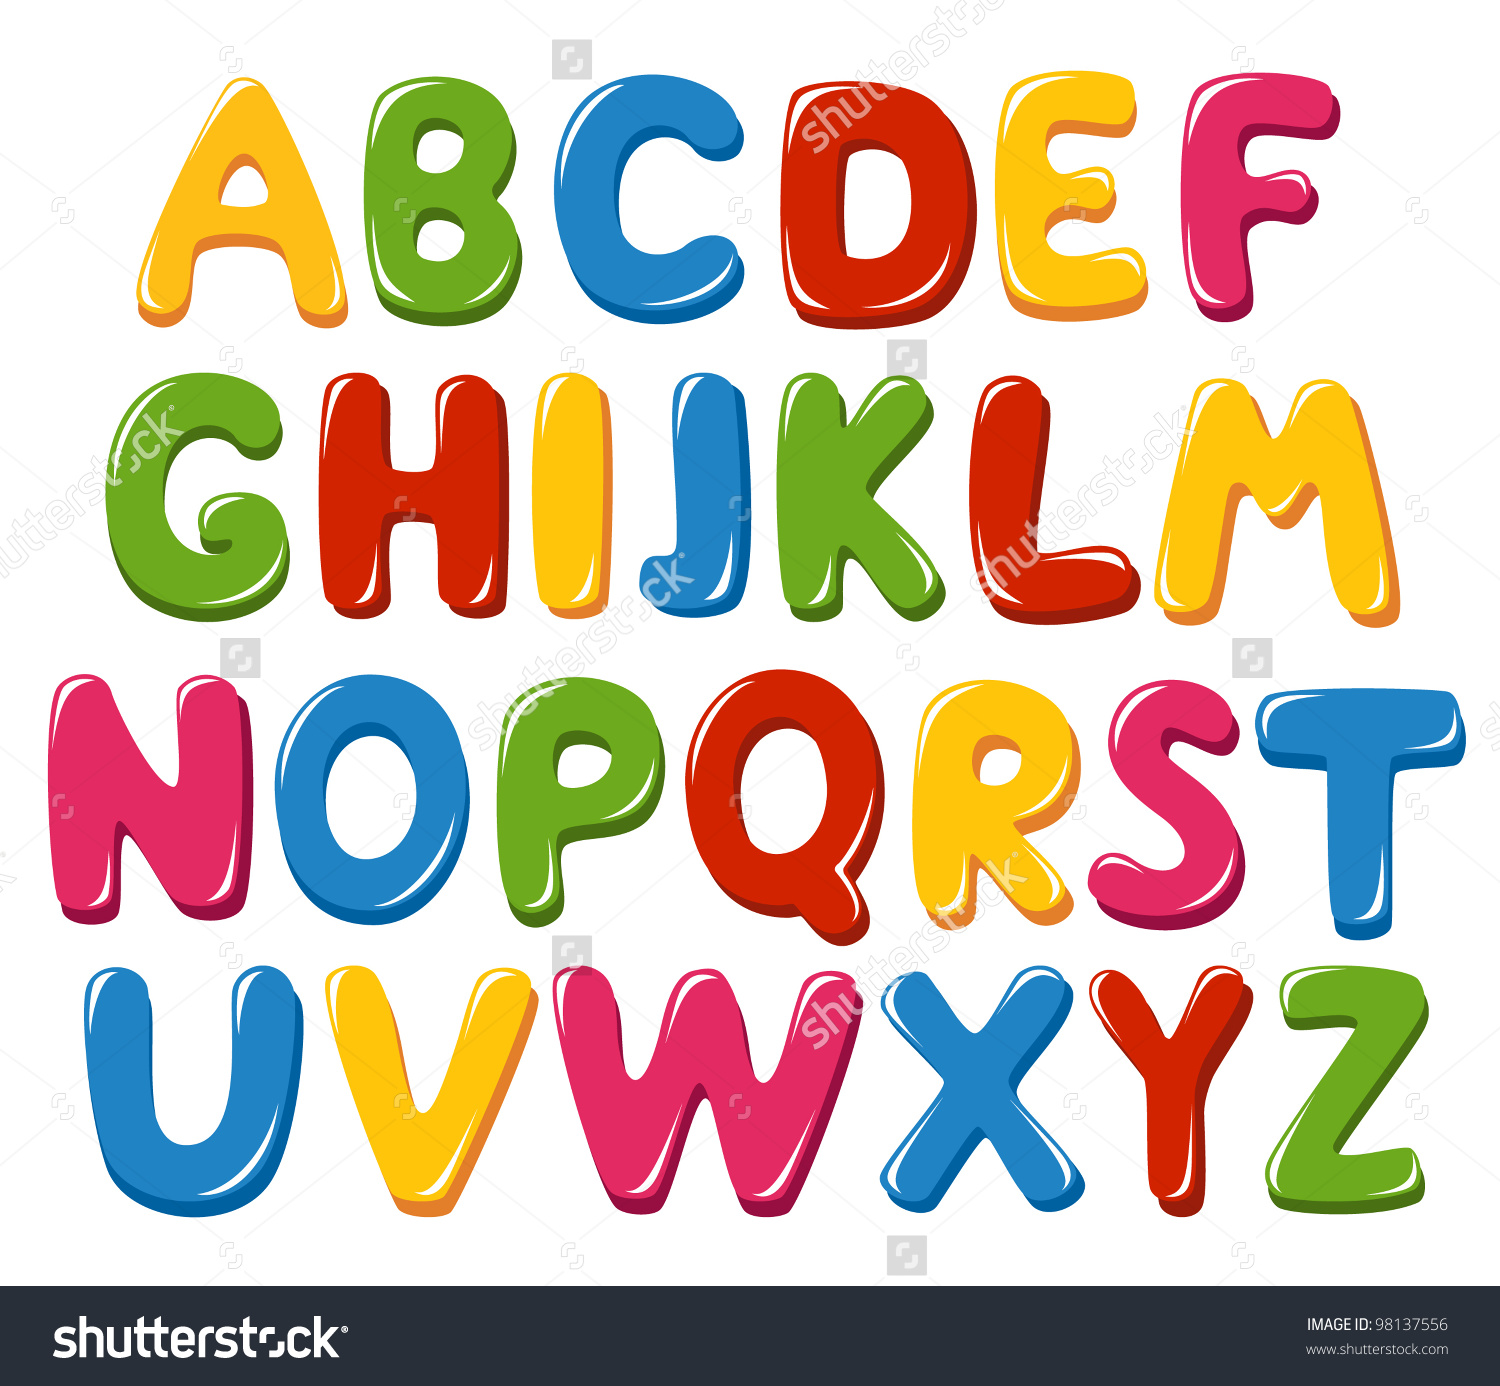 Alphabet clip free download Alphabet Letters Stock Vector 98137556 - Shutterstock clip free download